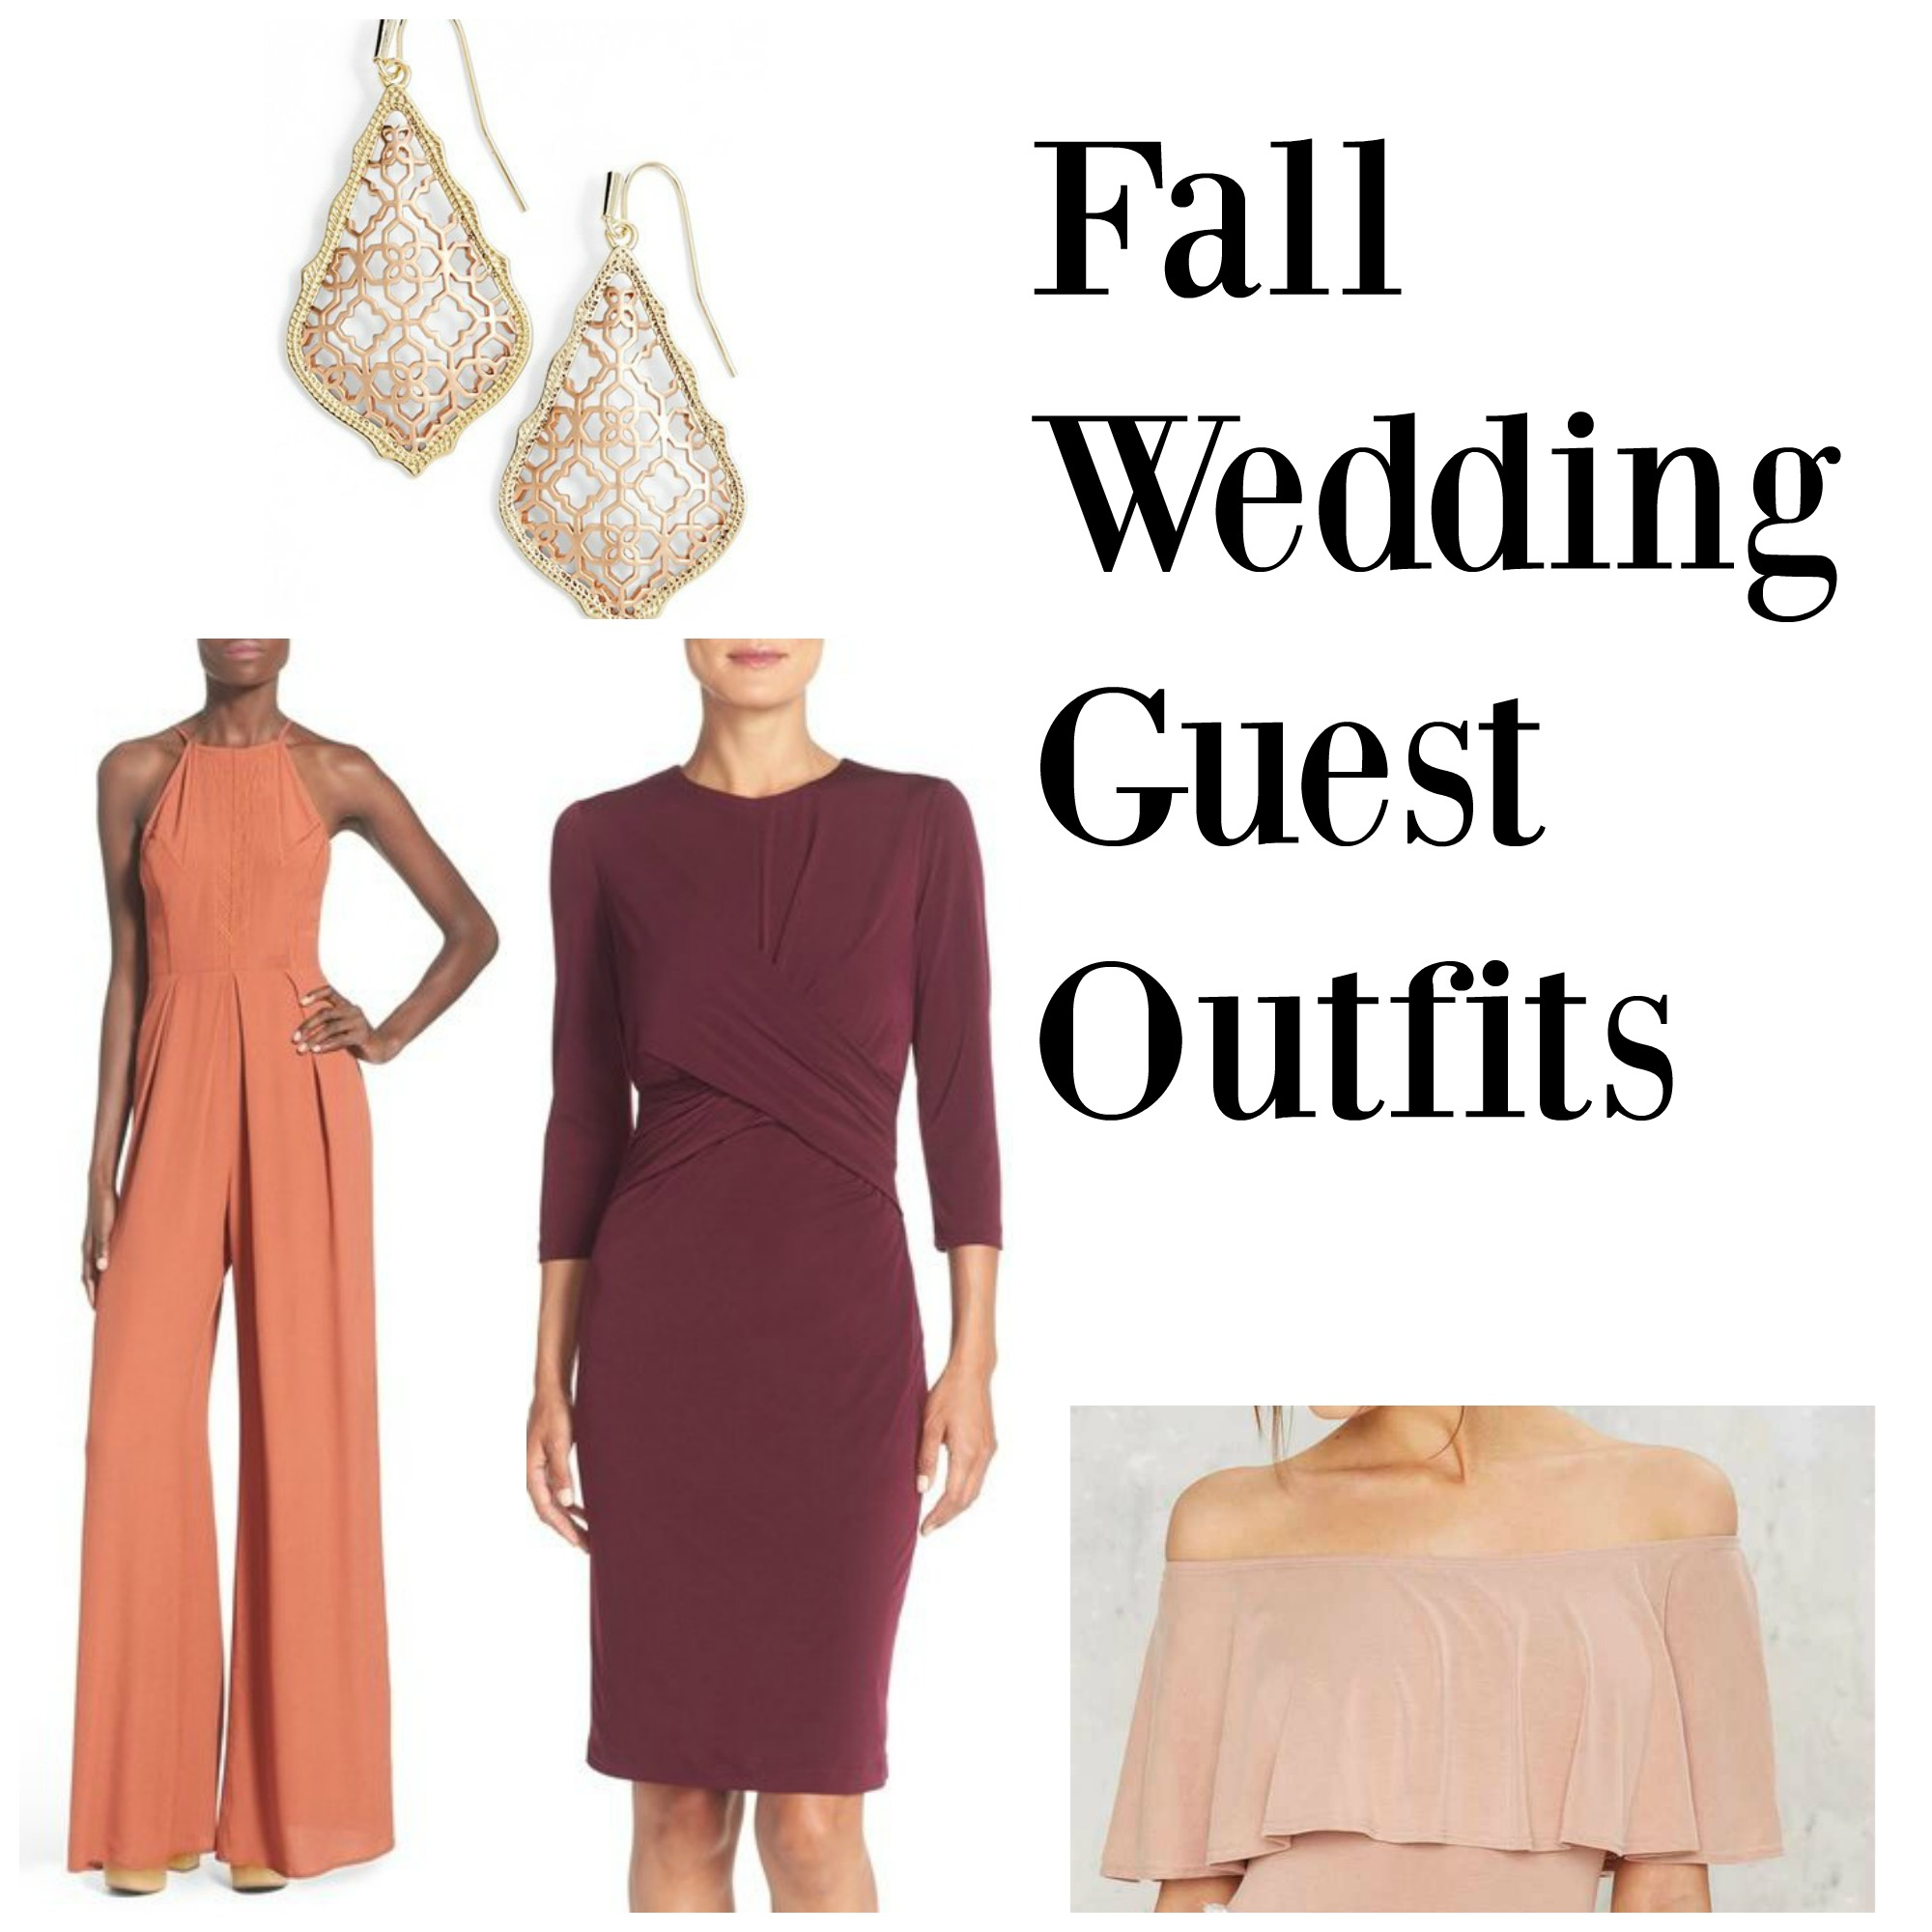 Fall Wedding Guest Outfits - Fierce Looks